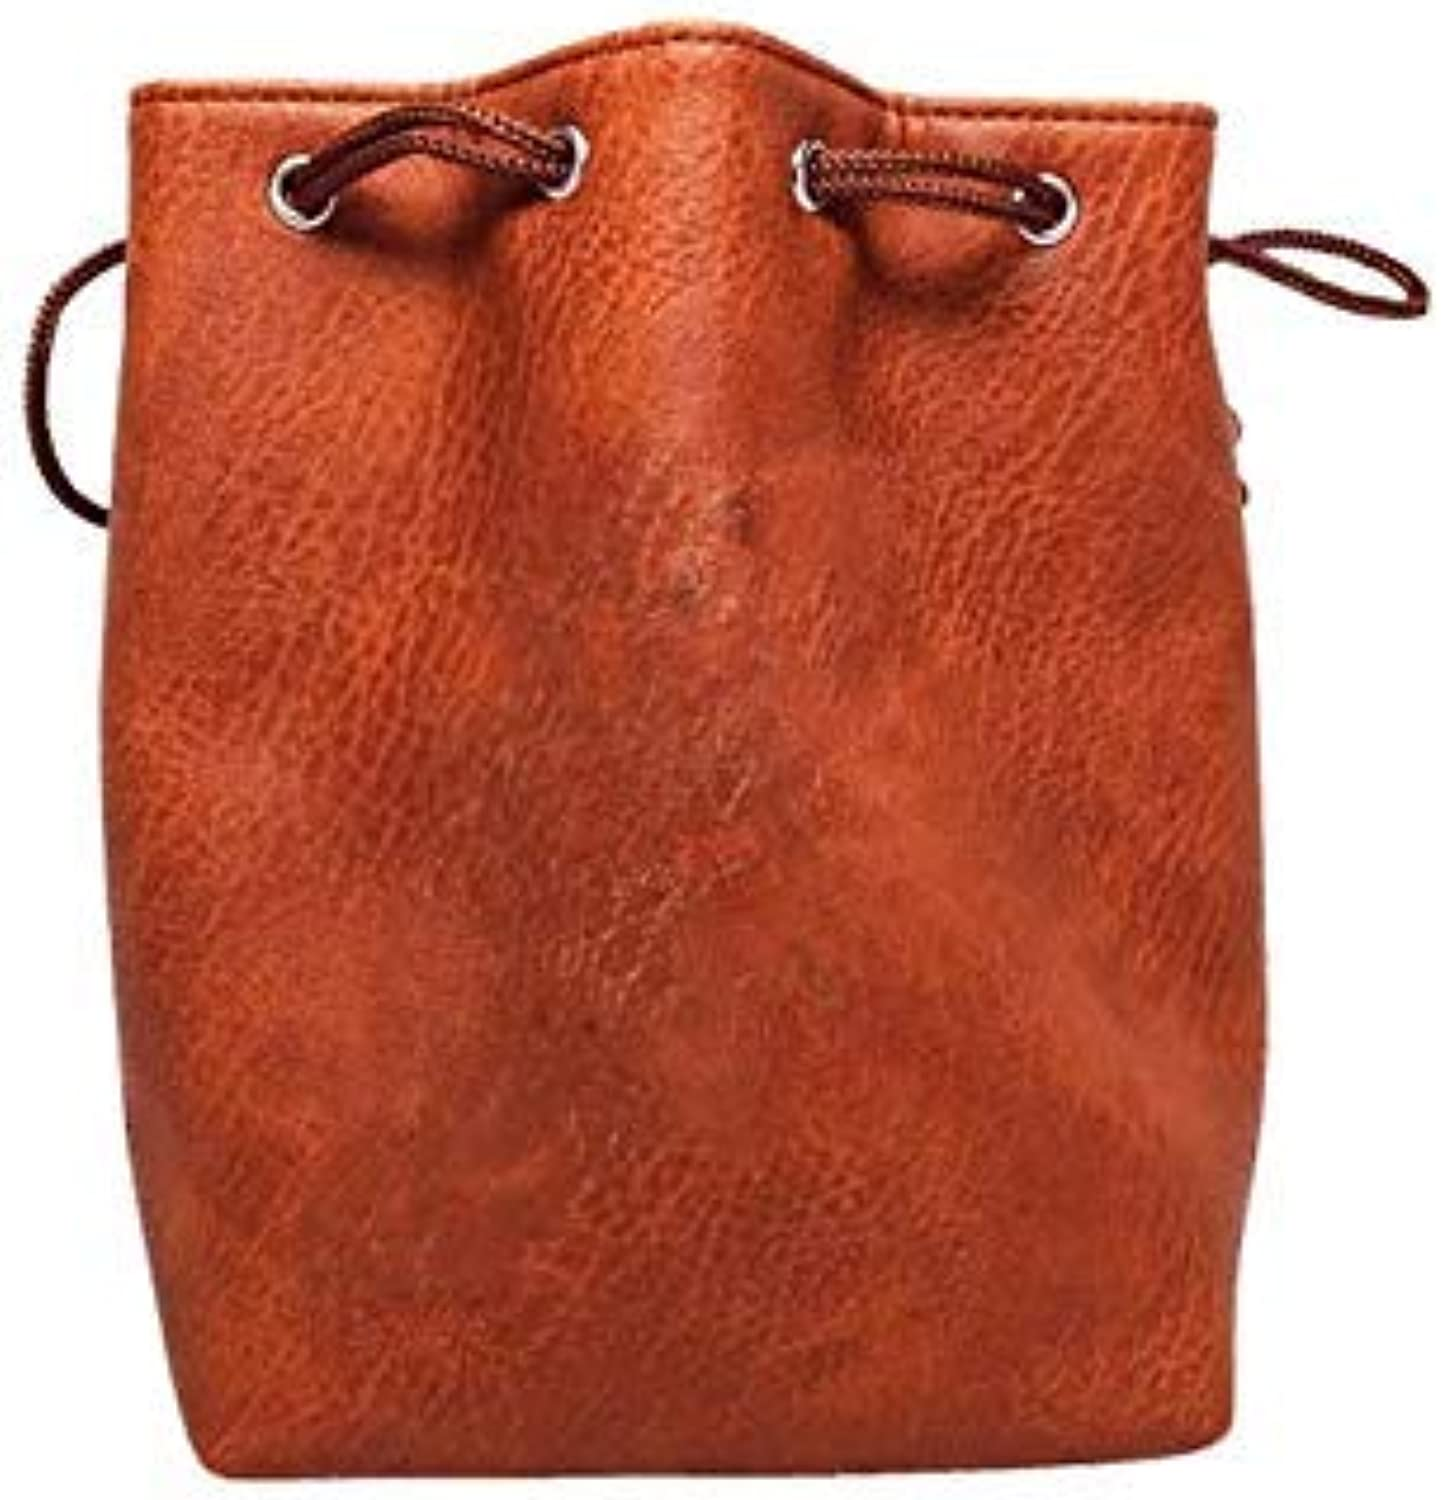 Brown Leather Lite Large Dice Bag  Brown Faux Leather Exterior with Lined Interior  Stands Up on its Own and Holds 400 16mm Polyhedral Dice